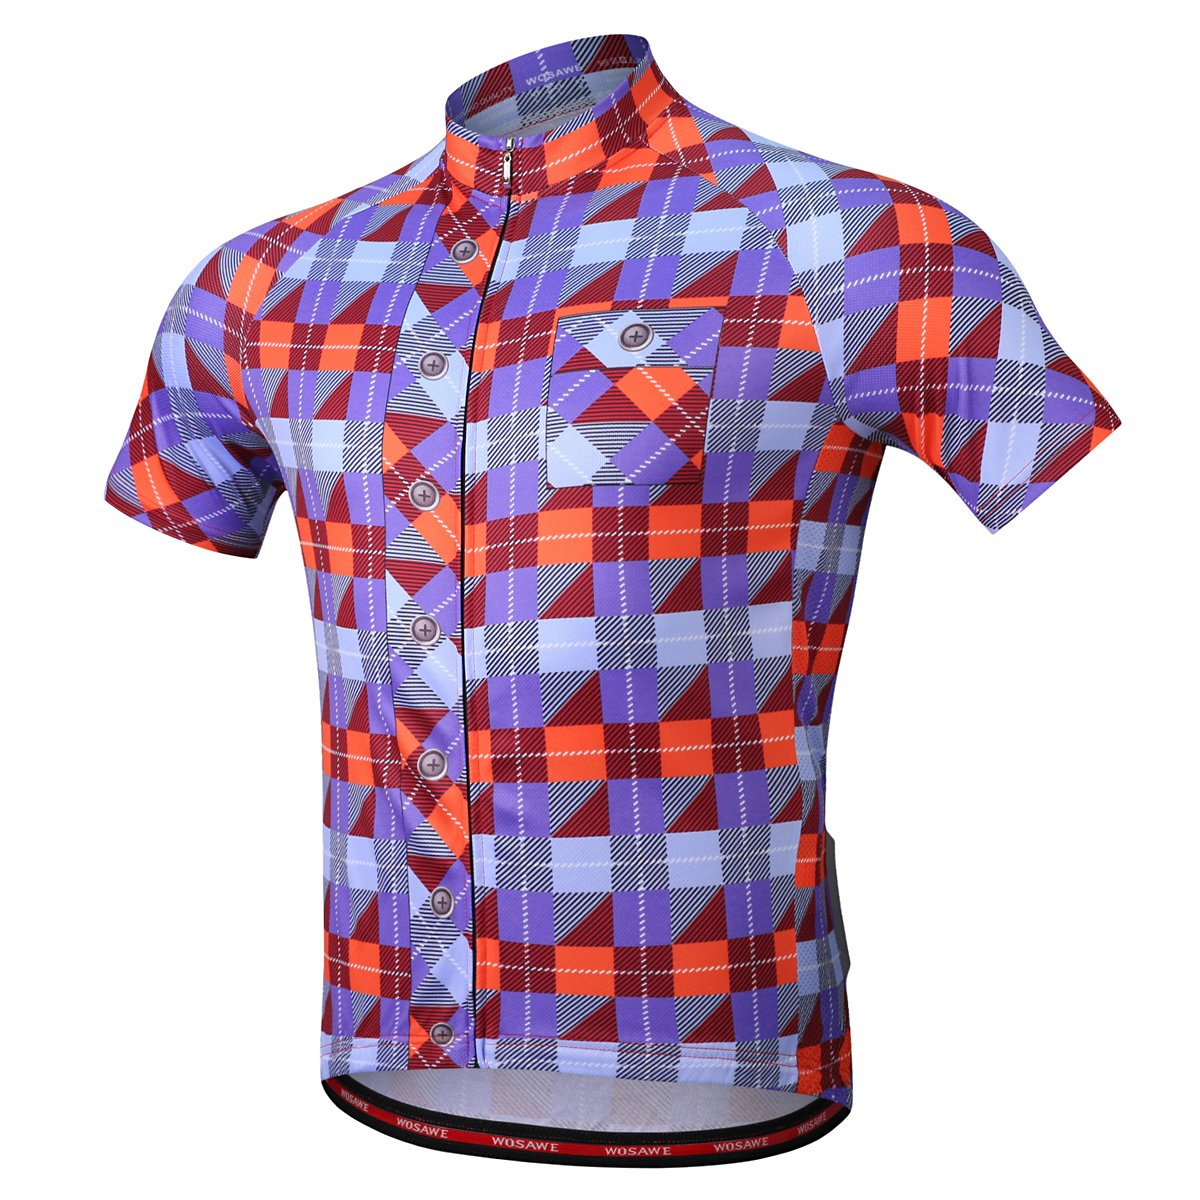 fc1e734a2 Amazon.com  WOSAWE Men s Plaid Cycling Jersey Short Sleeves Printed Bike  Shirts  Clothing